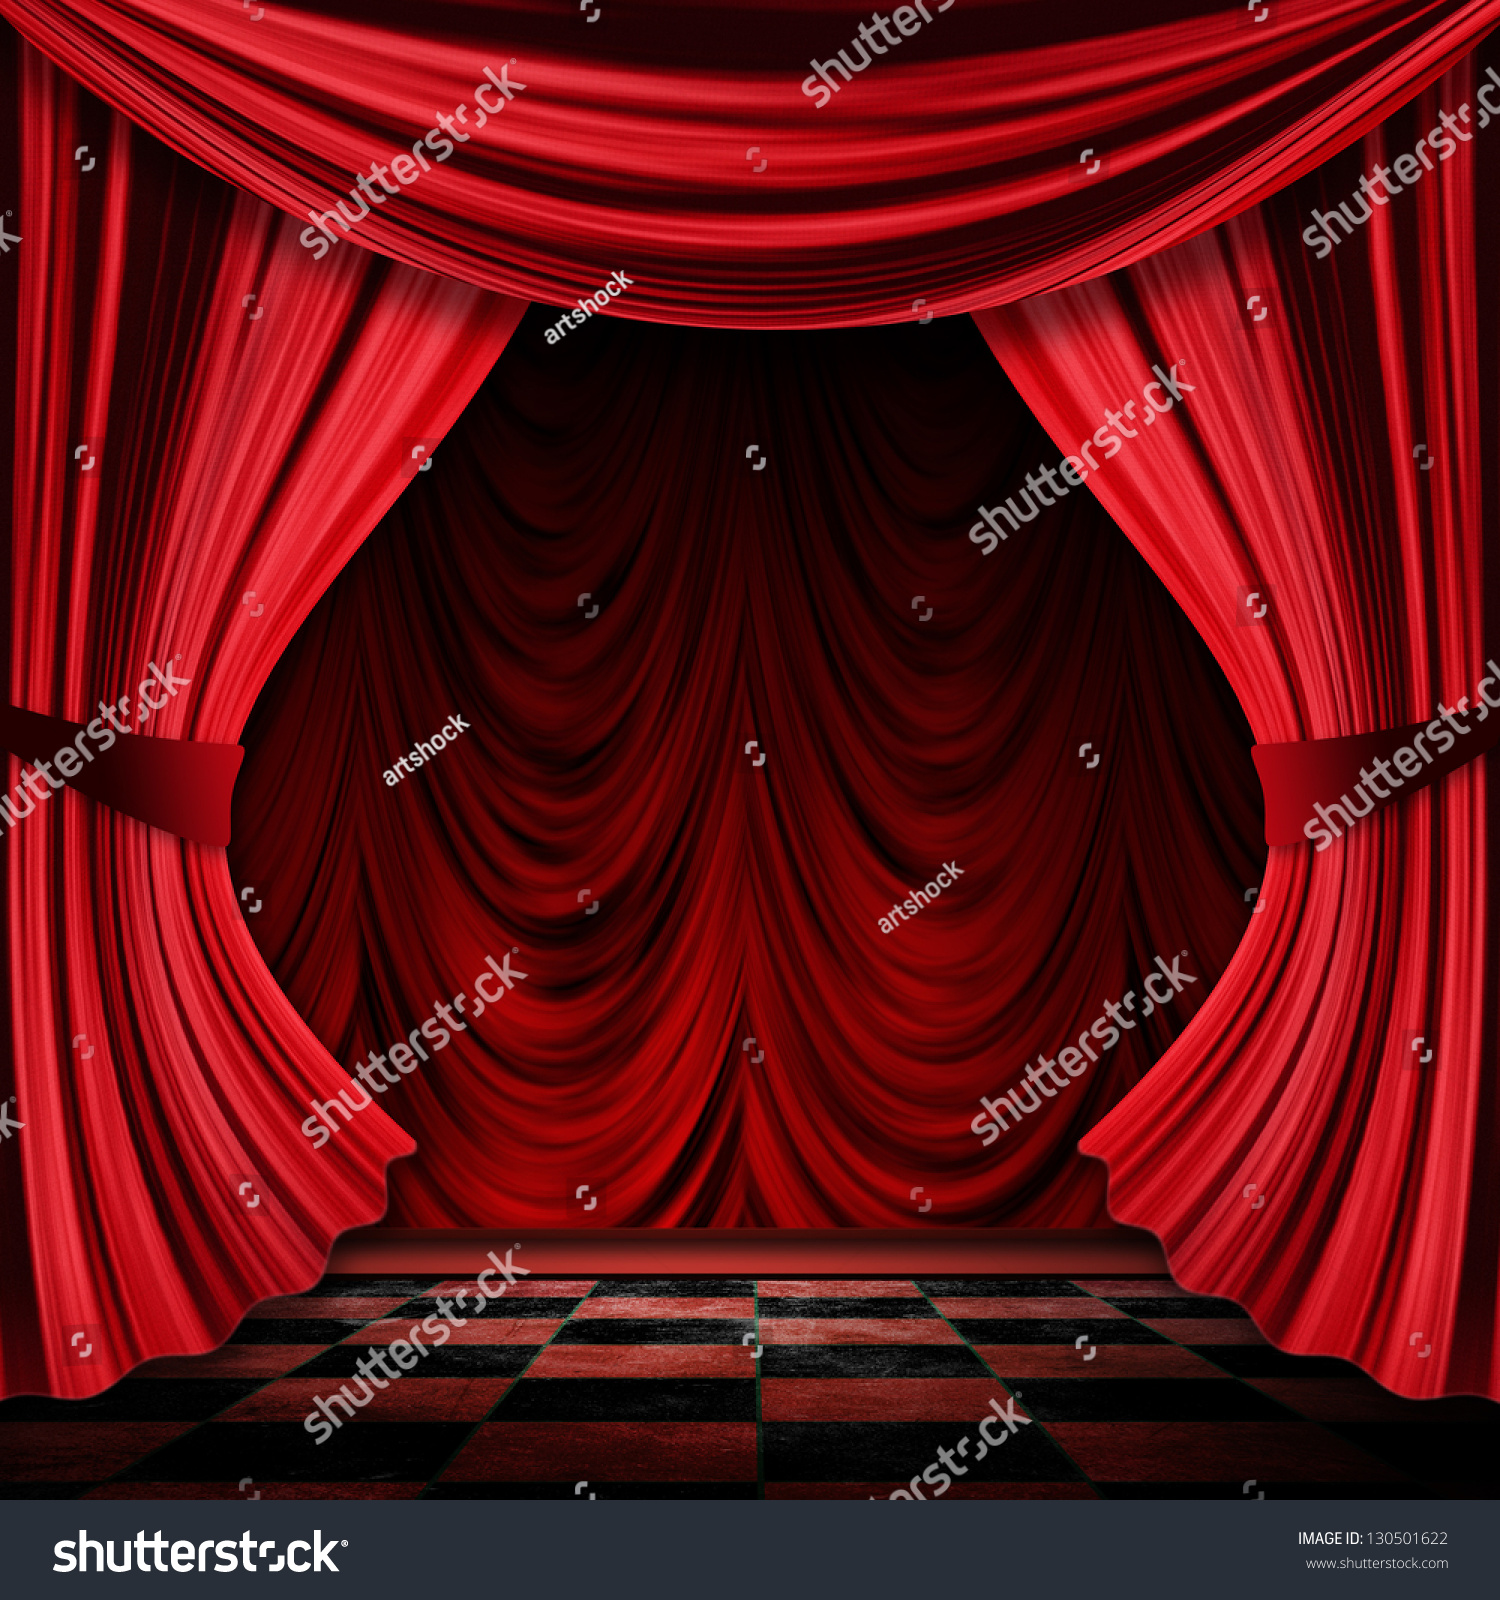 Closed theater curtains - Close View Of Vintage Decorative Red Theater Stage Curtains